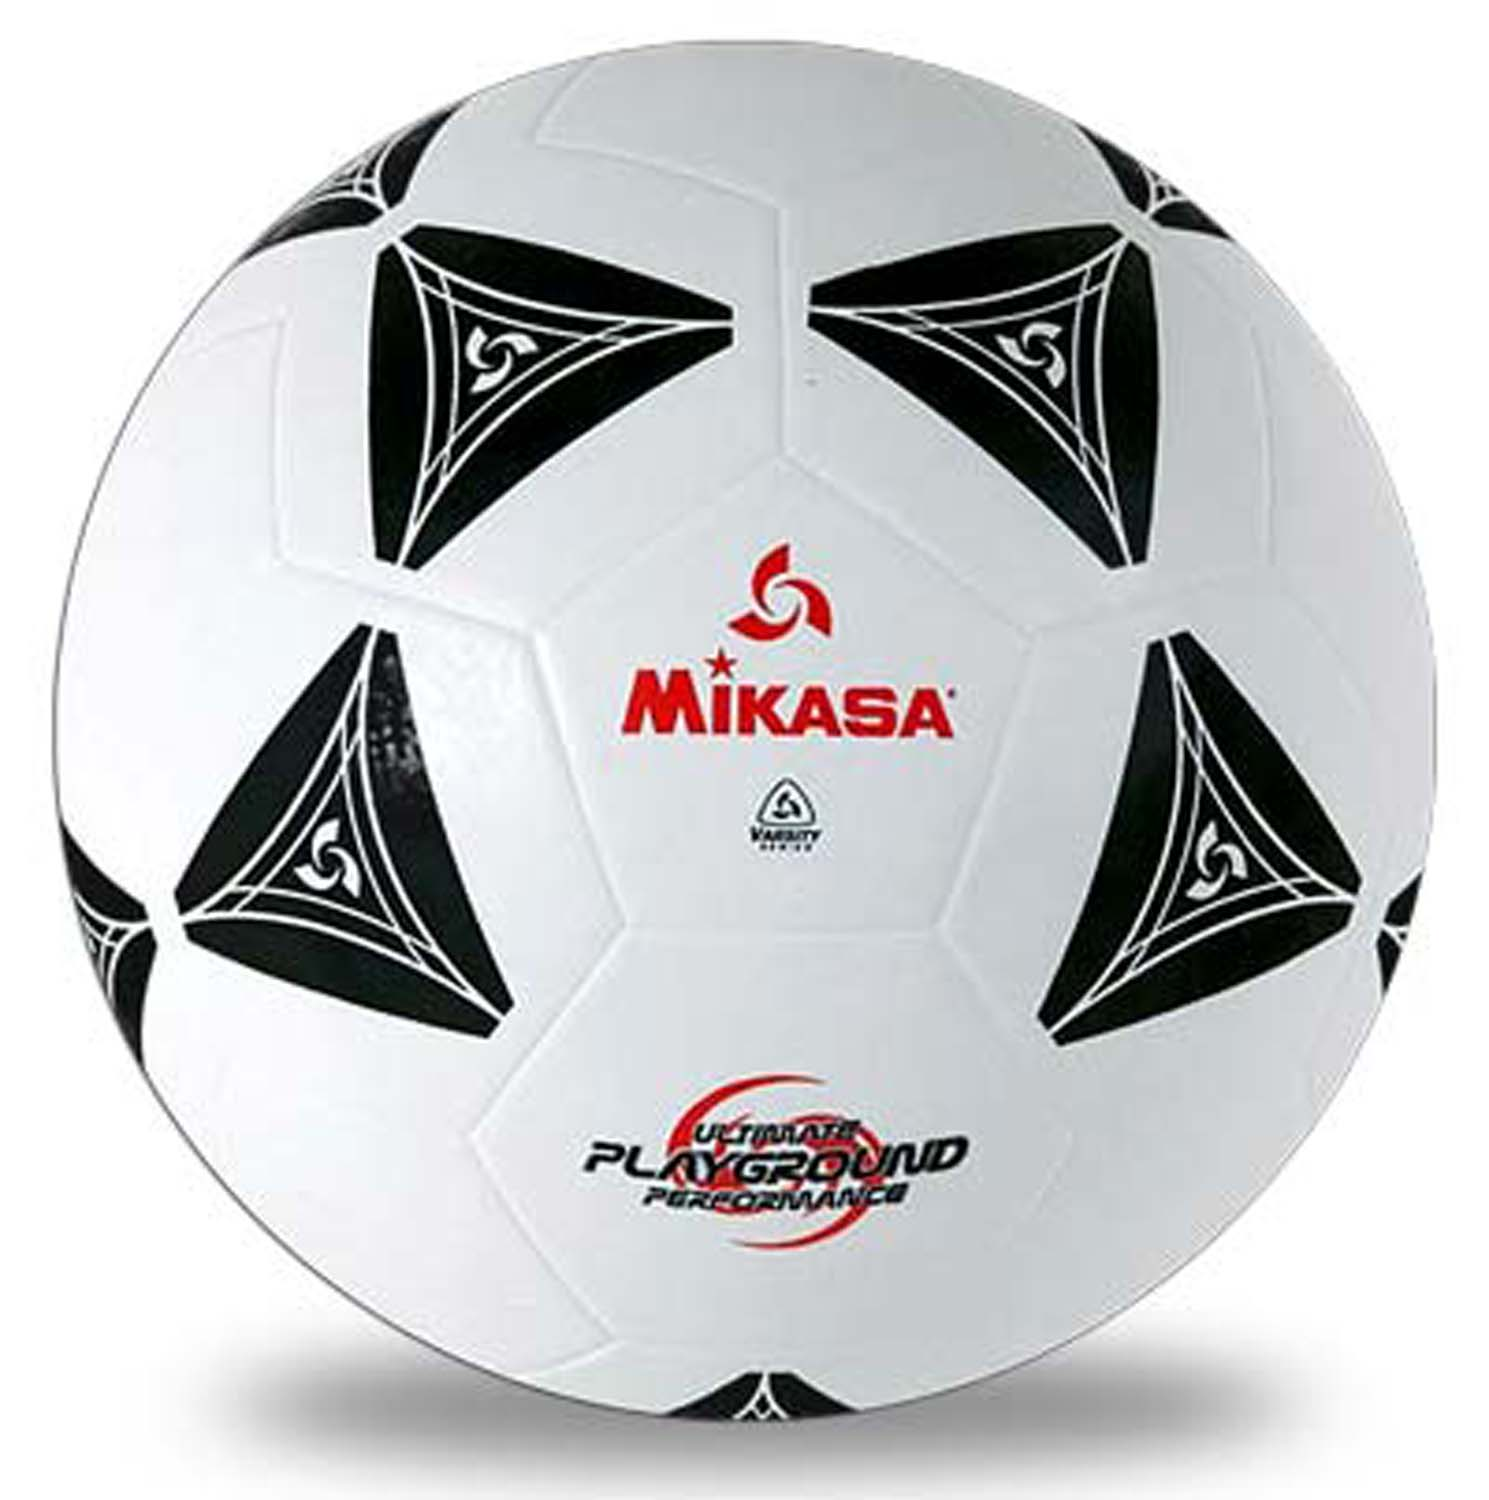 Mikasa S3000 Black And White Rubber Soccer Ball Size 5 - 49098 - Soccer Balls Rubber 49098